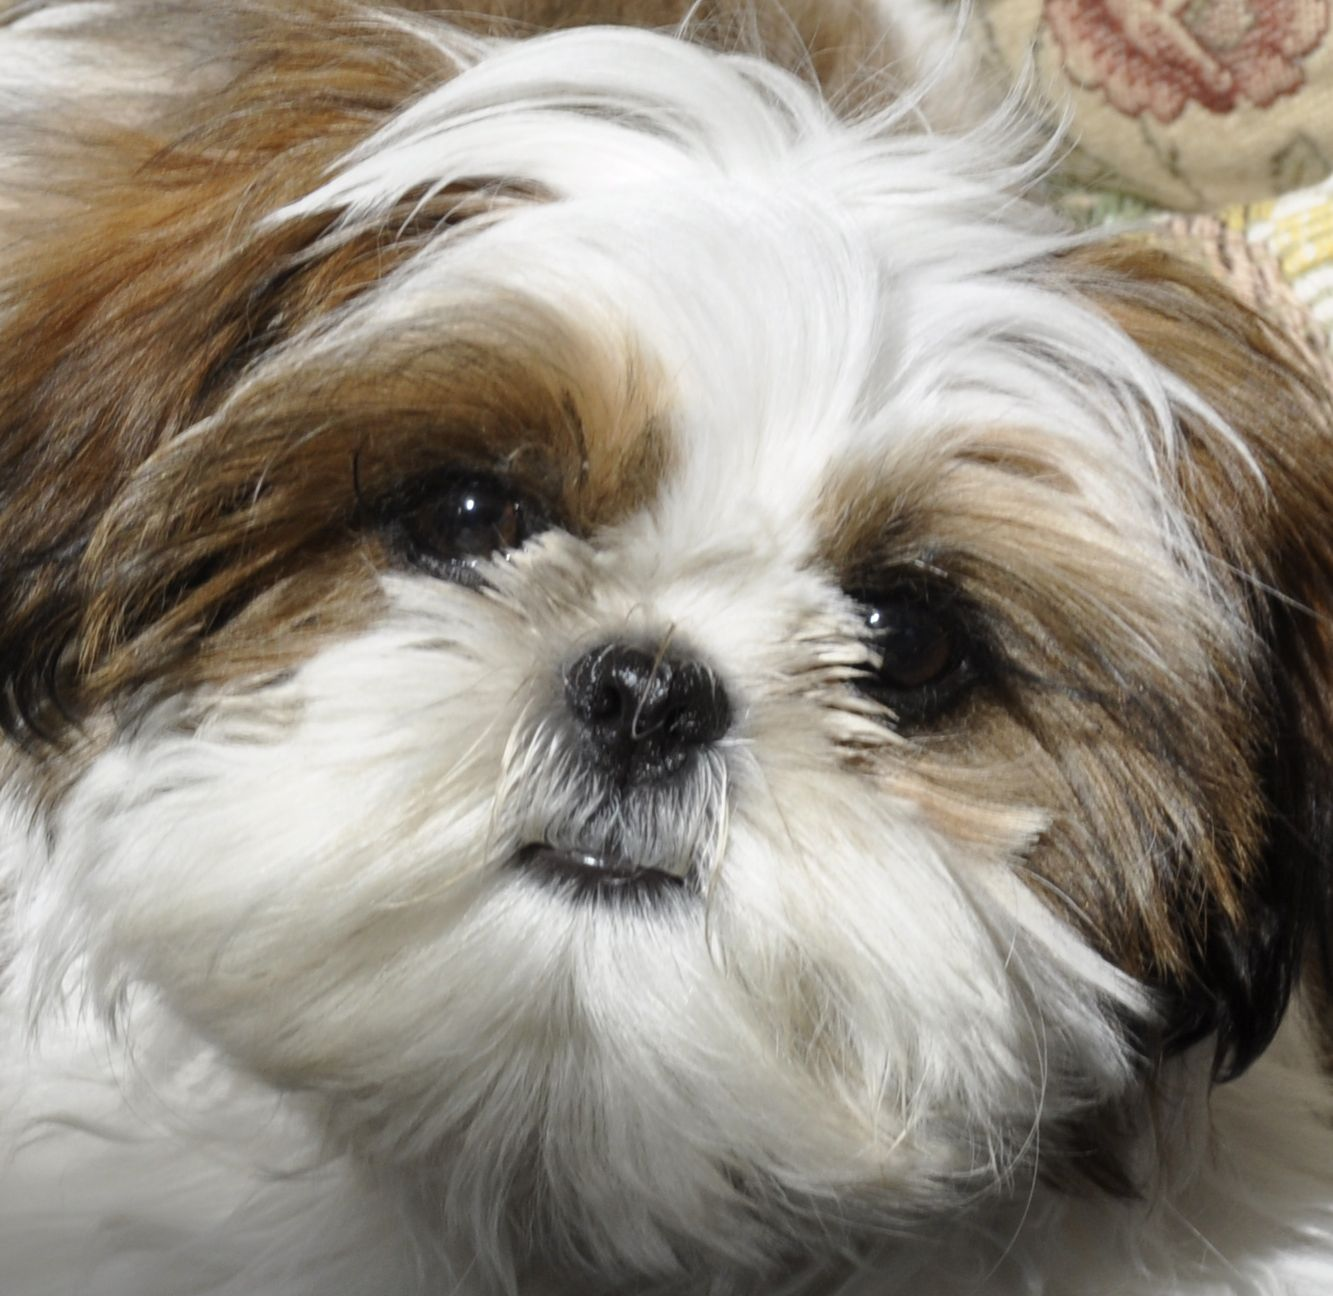 shih tzu learn more about the shih tzu here http en